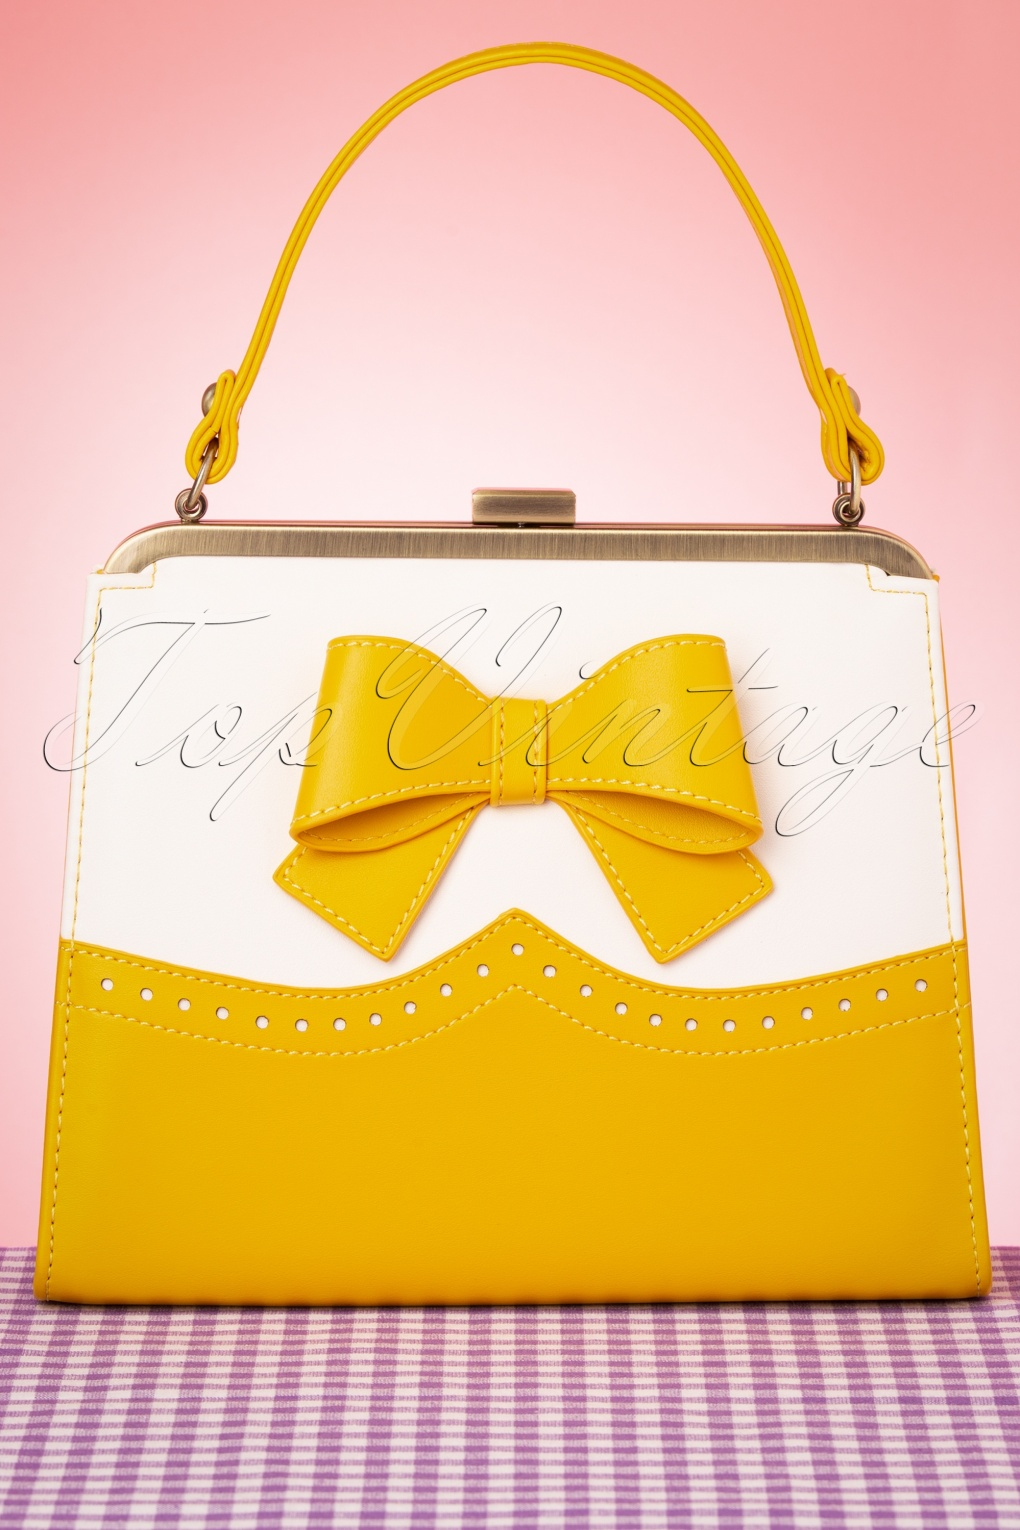 1950s Accessories | 50s Scarf, Belt, Parasol, Umbrella 50s Inez Classica Bag in Yellow and White £57.02 AT vintagedancer.com